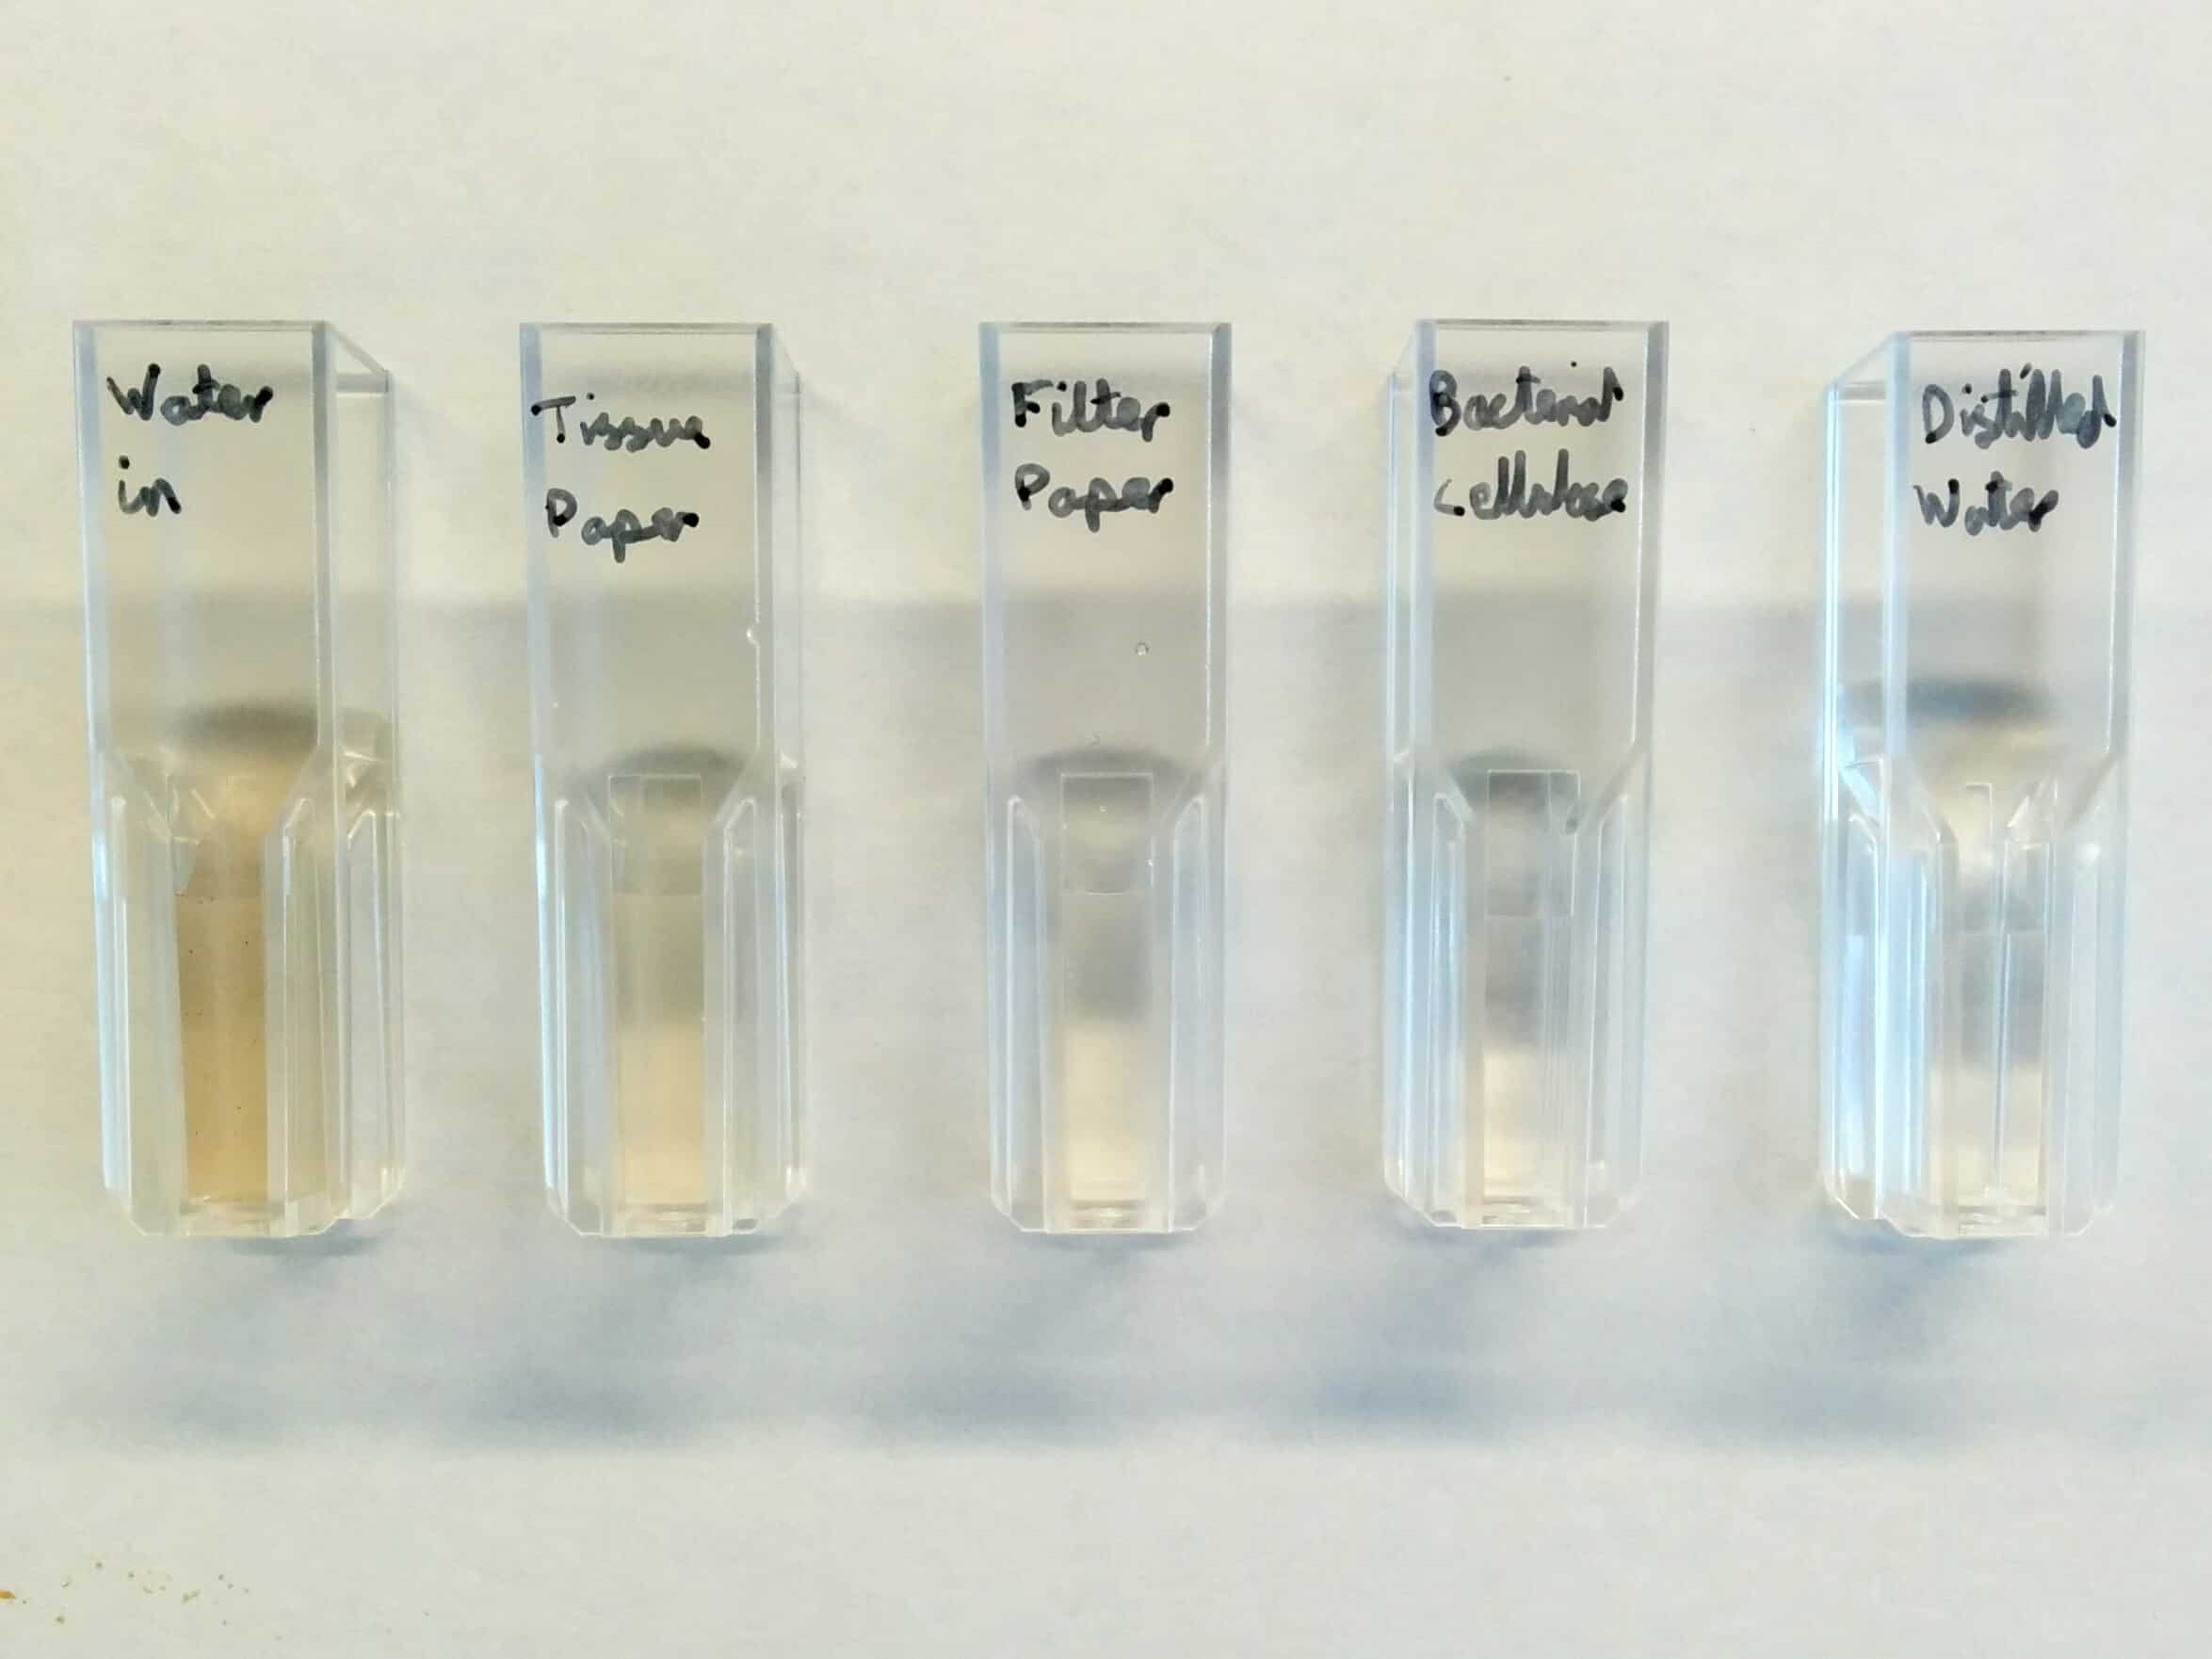 Different methods of filtering water